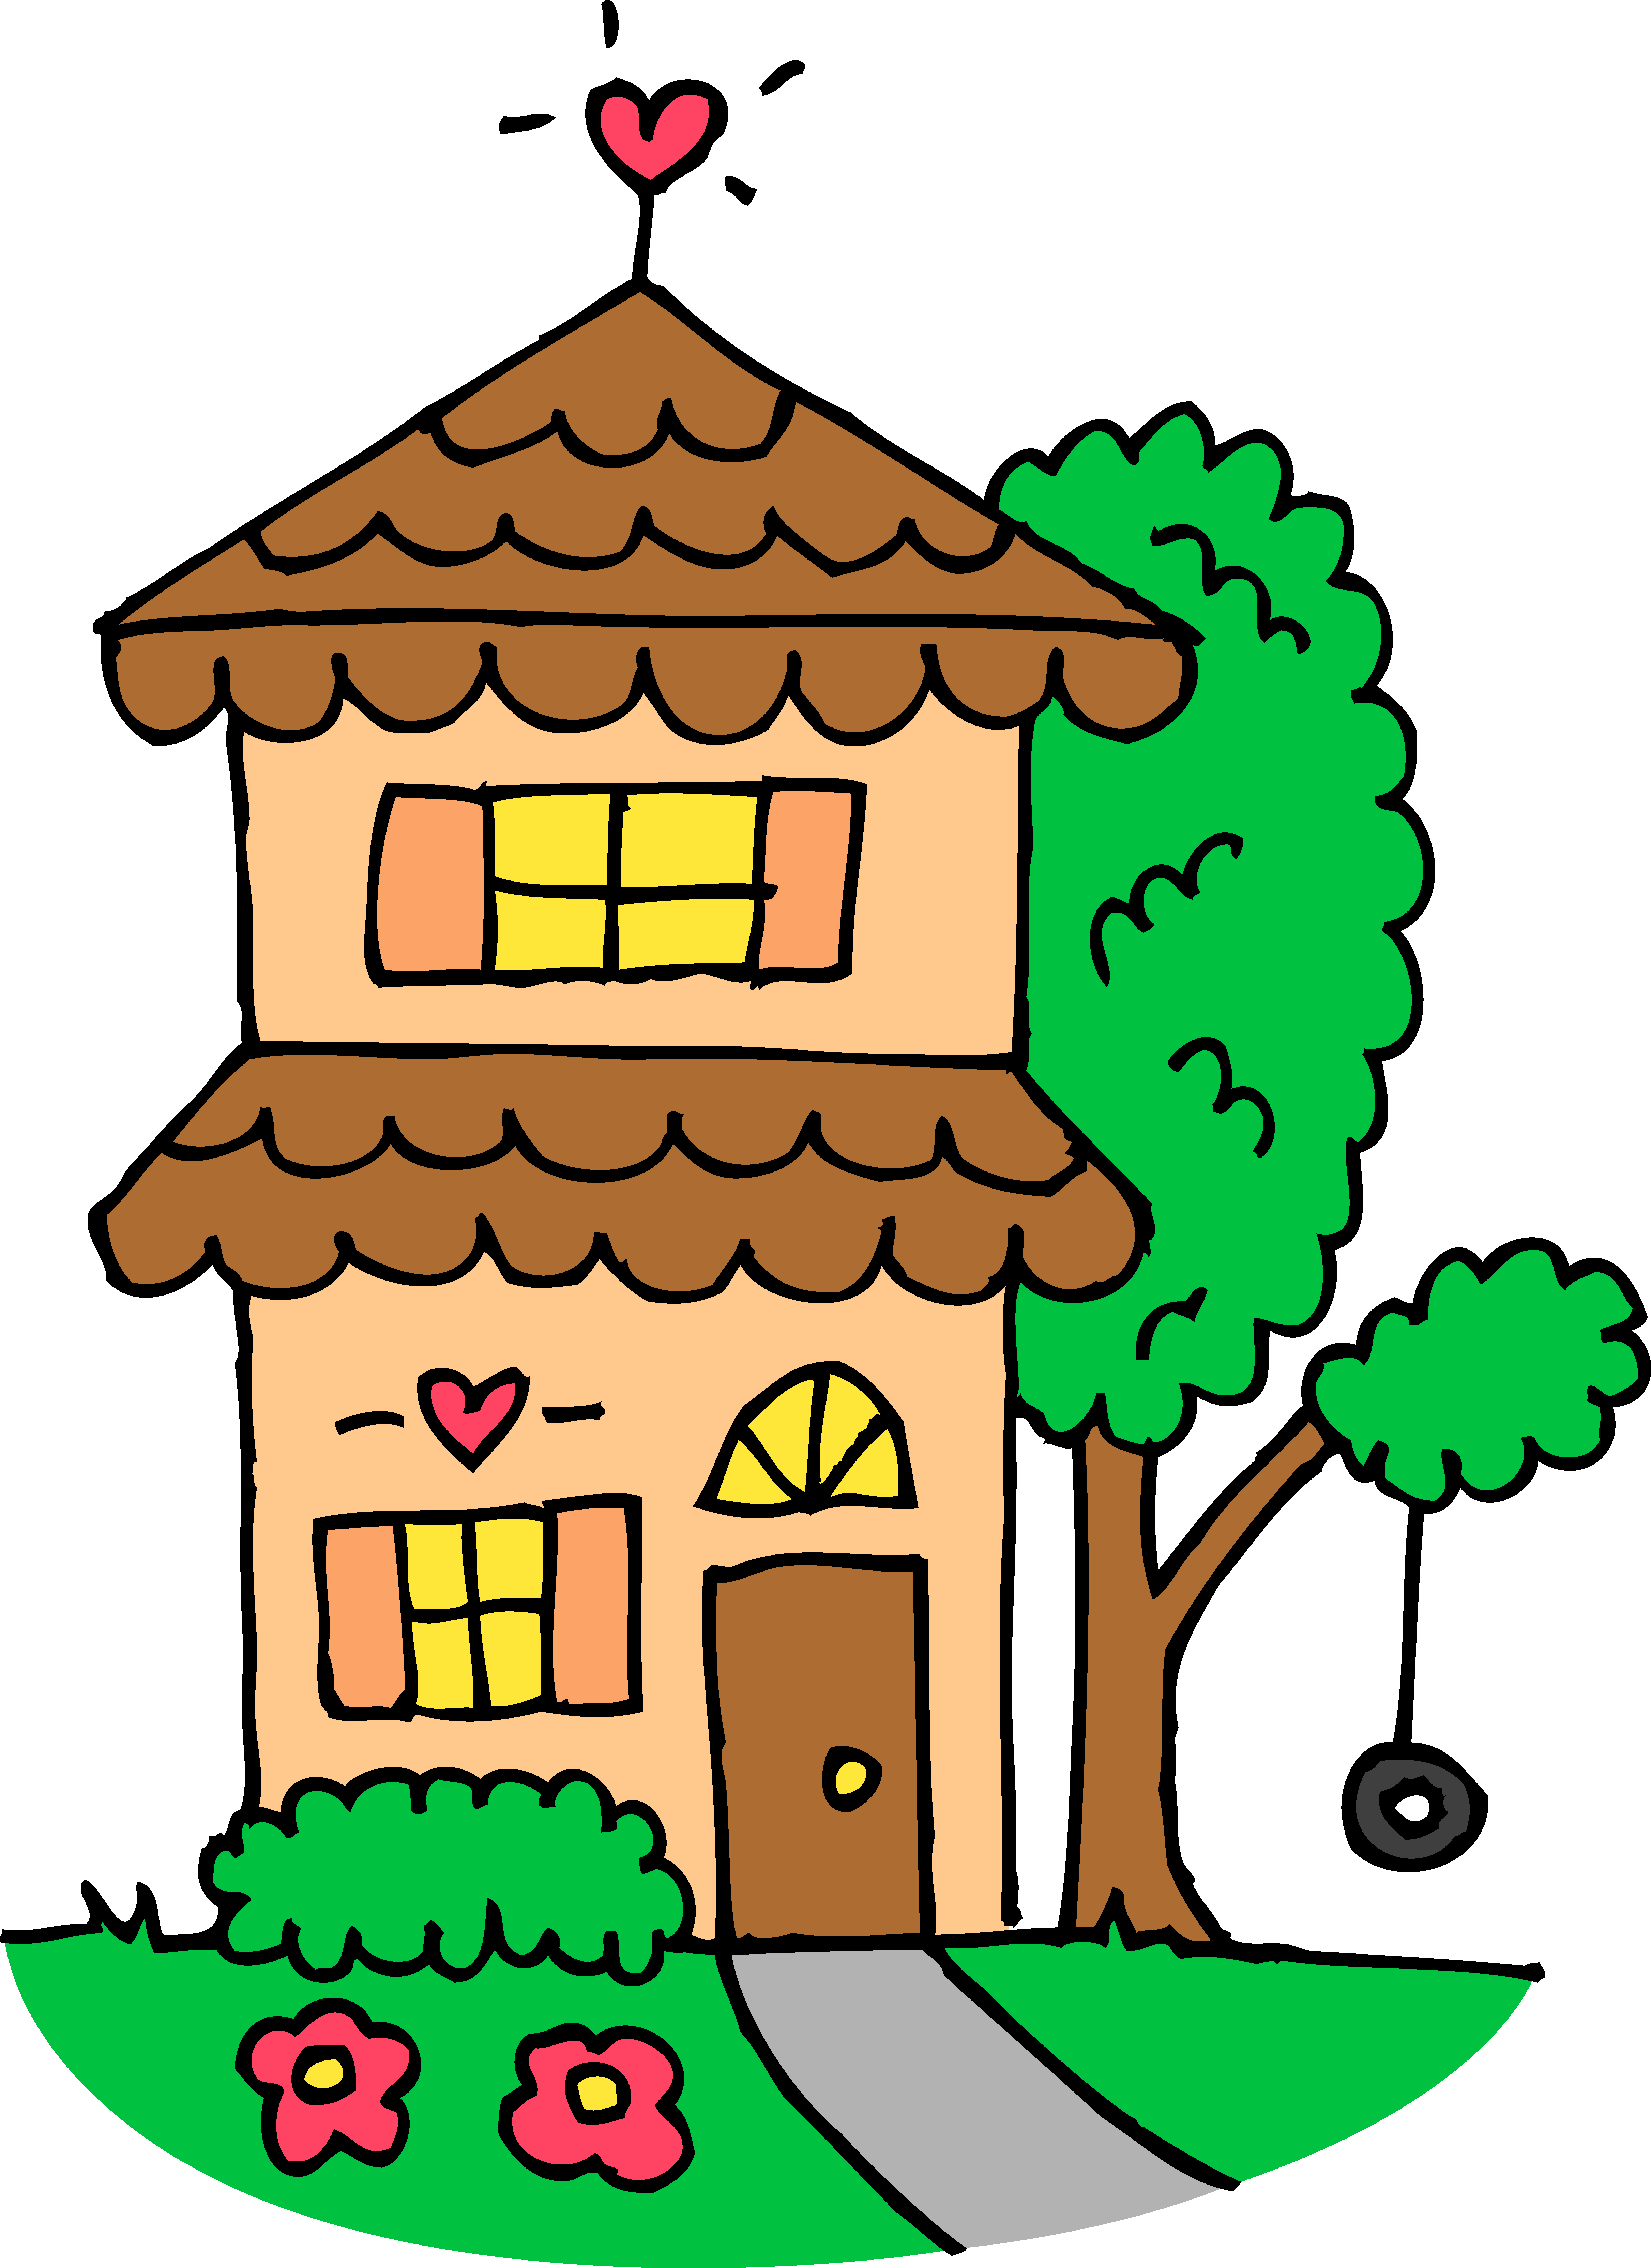 Scenery clipart cute house #3